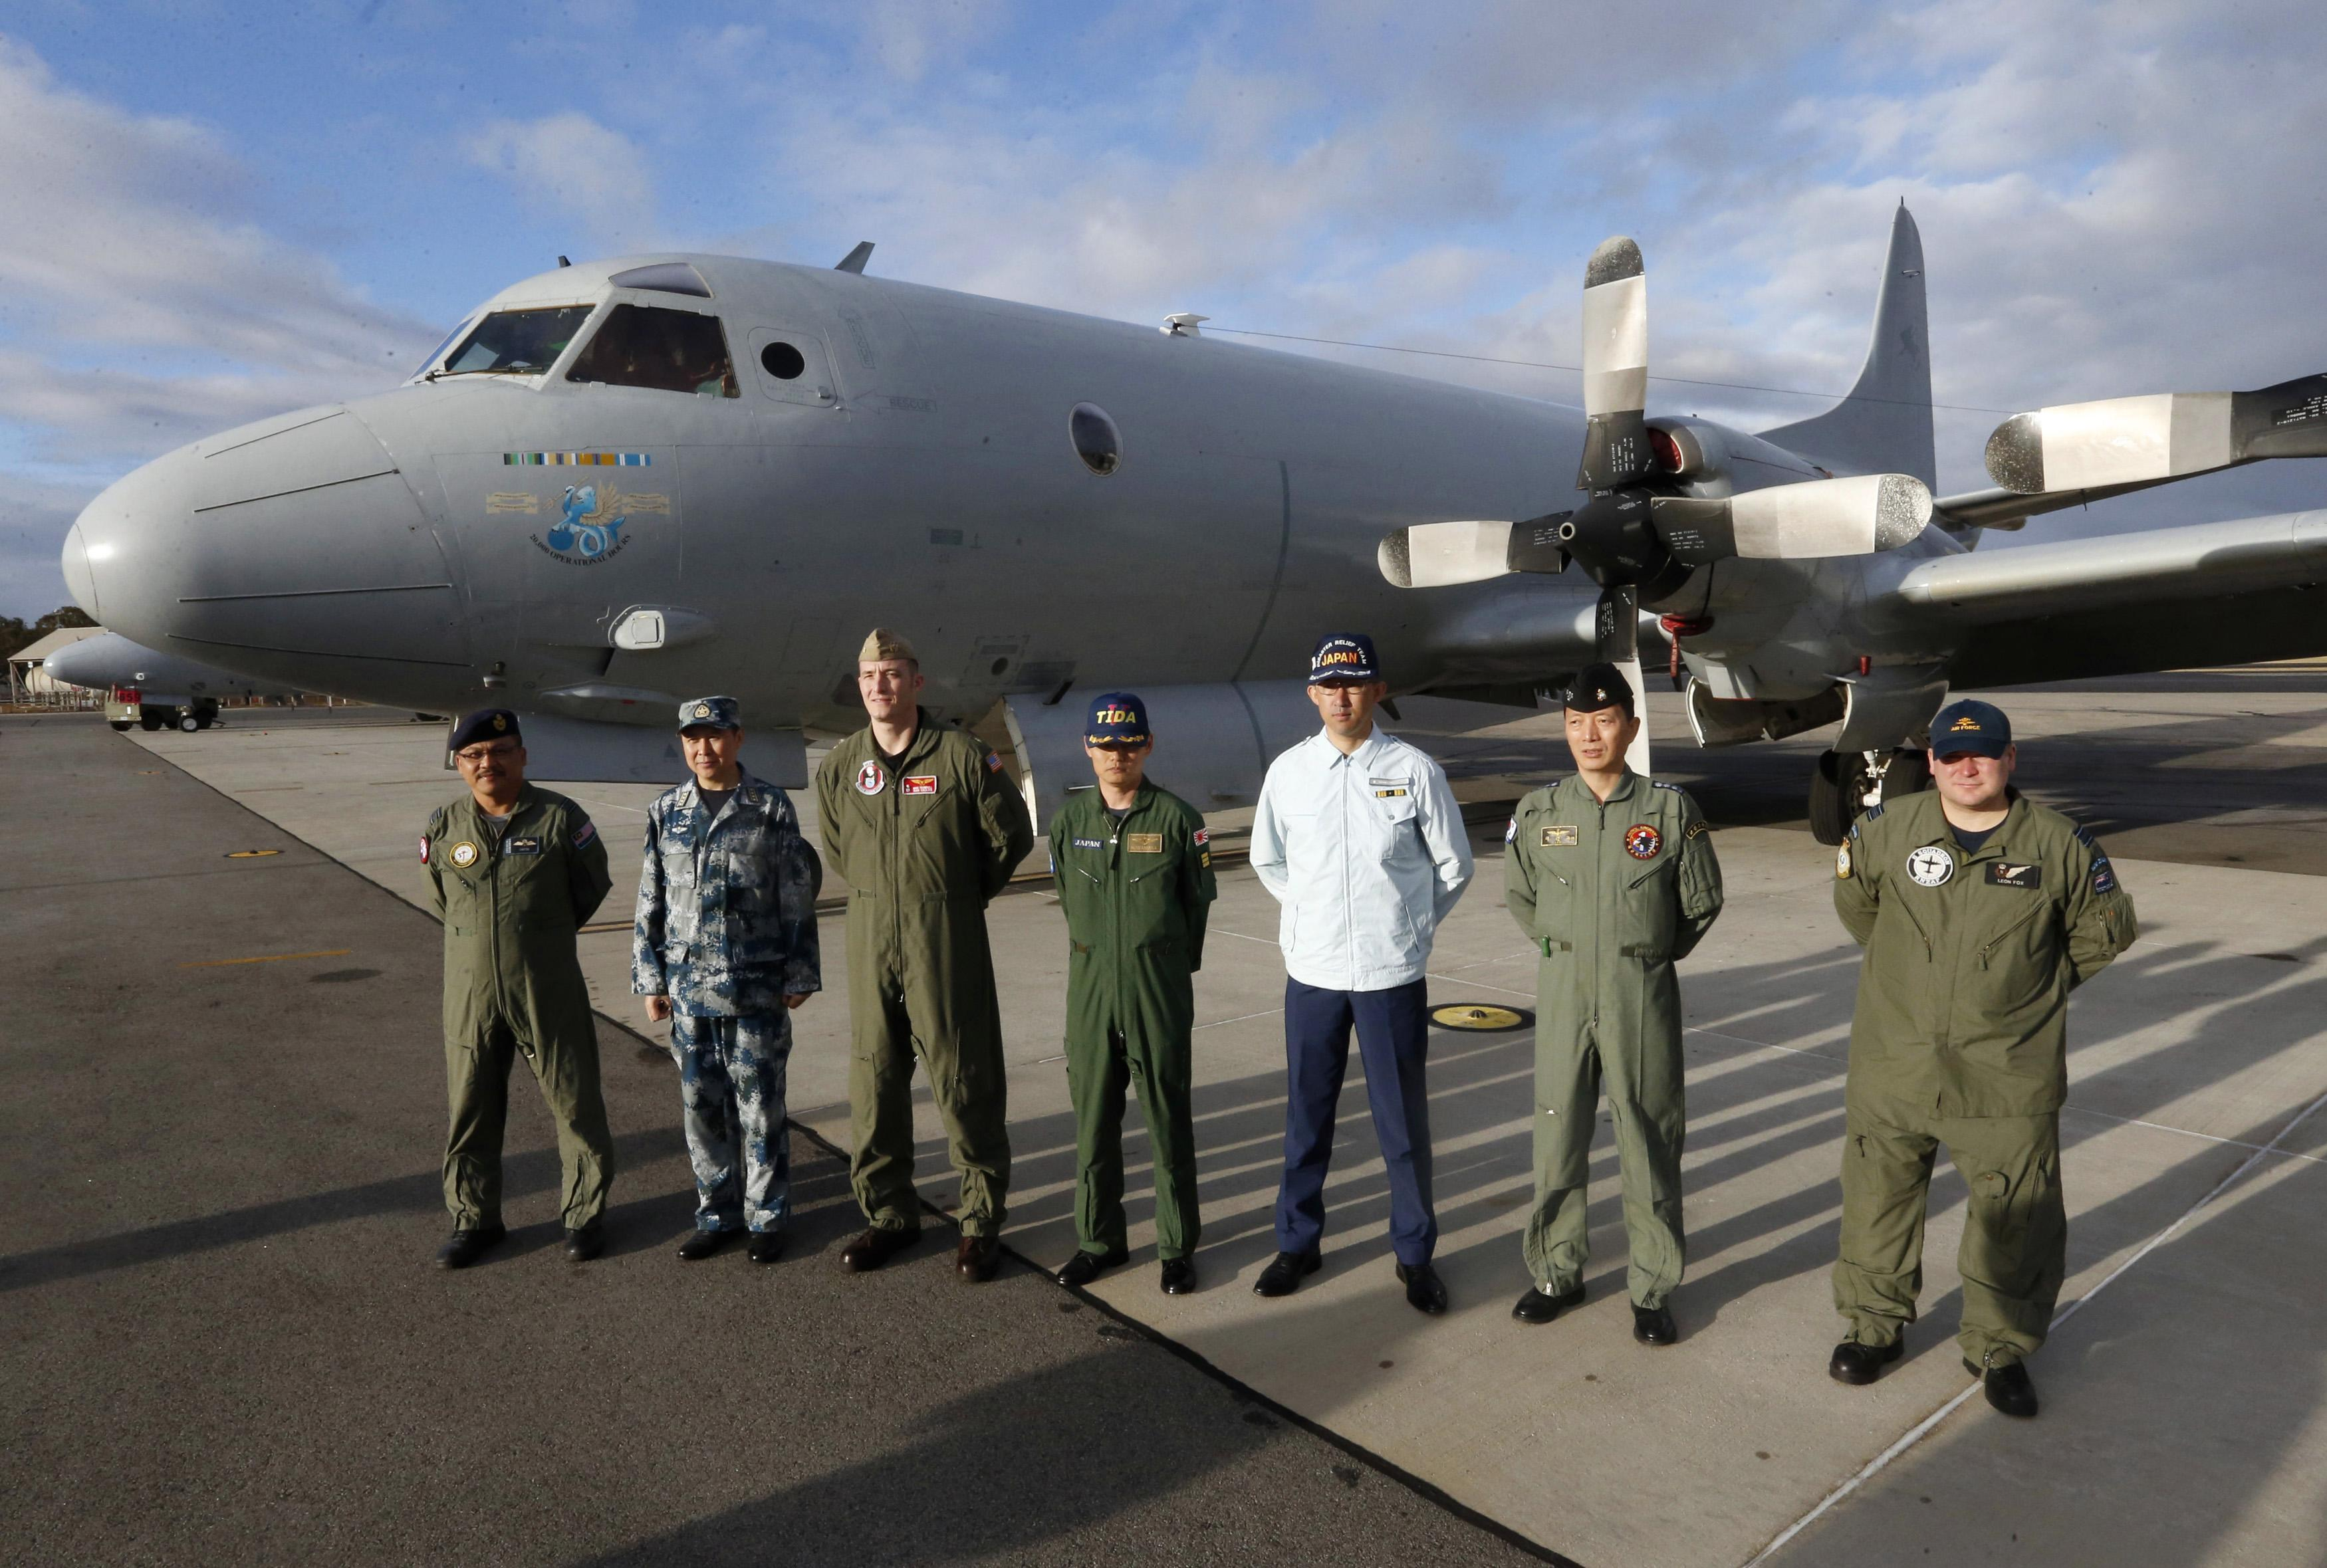 MH370 search team March 30